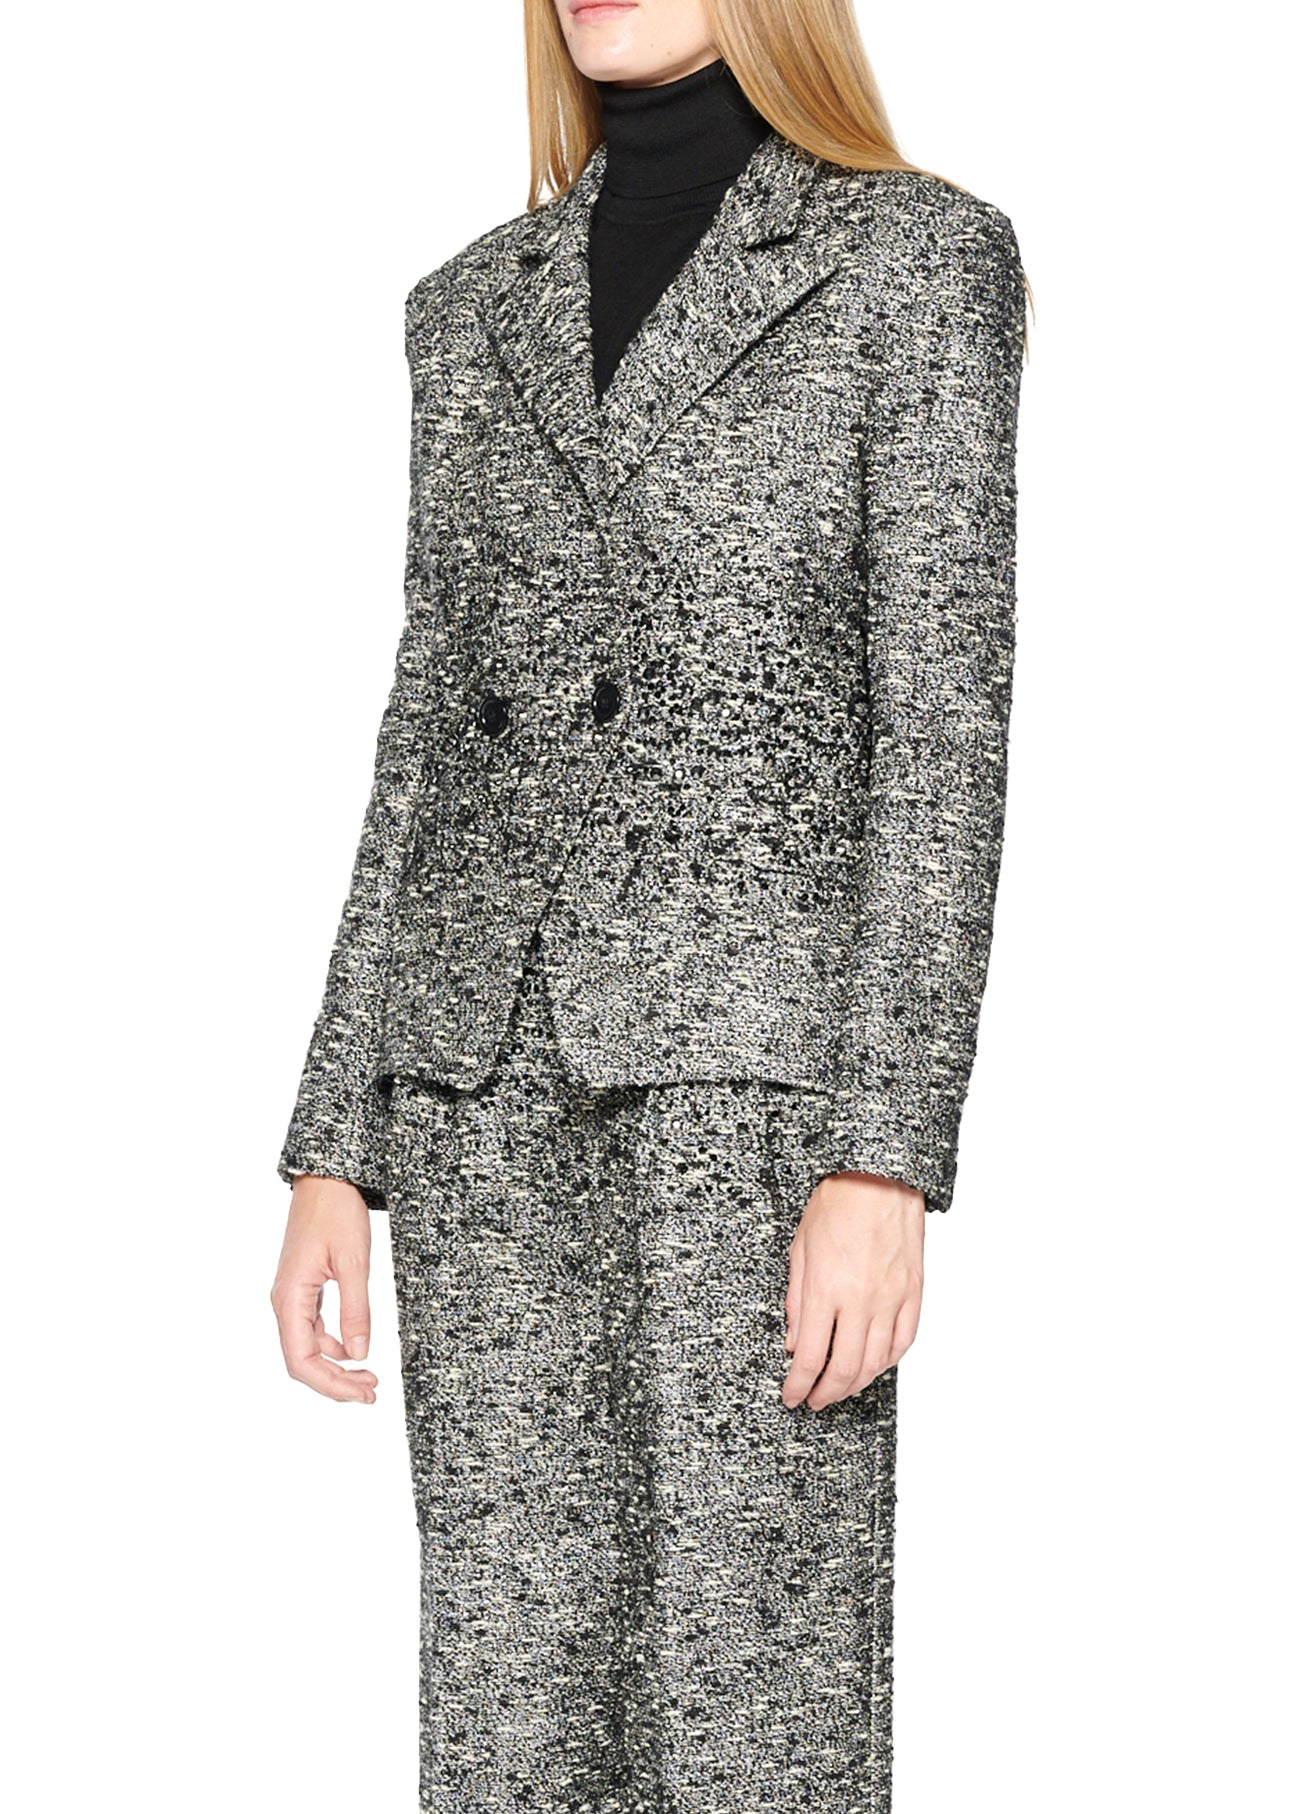 SPARKLE TWEED DOUBLE BREASTED BLAZER WITH CRYSTALS - Women's Jackets & Coats - Libertine